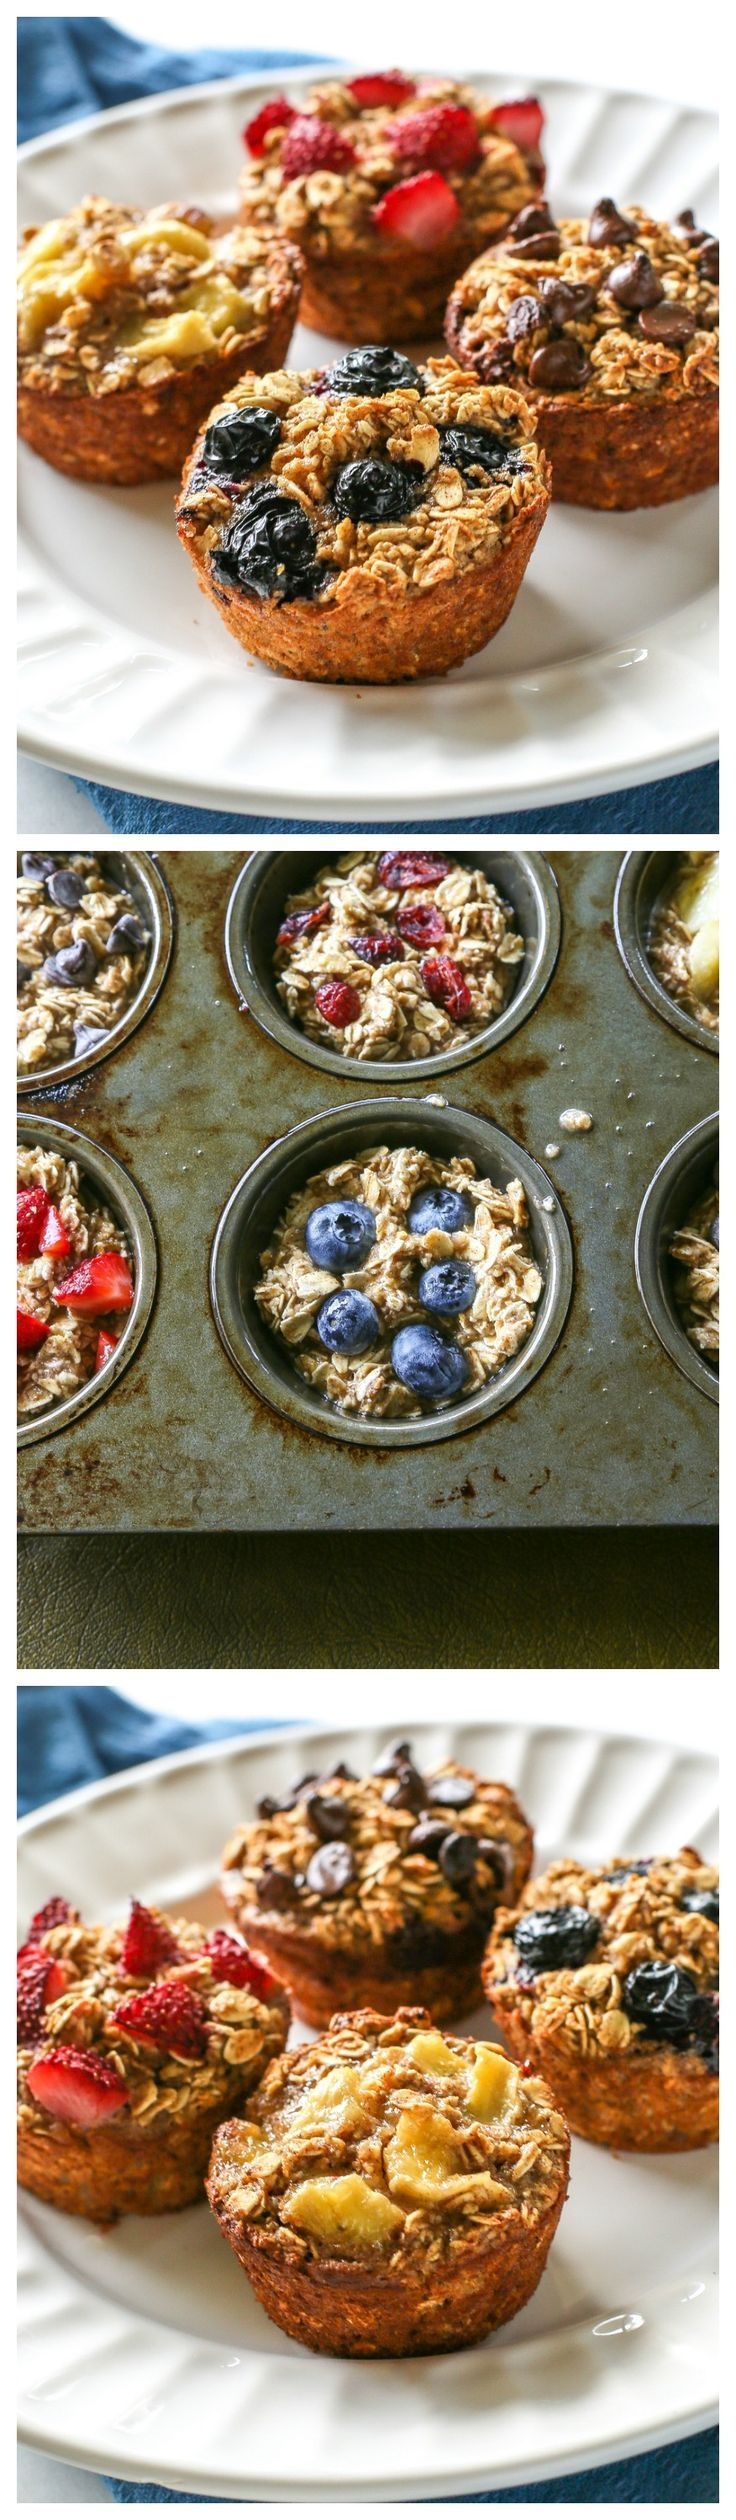 Healthy Oatmeal Cups that can be personalized for every member of your family!: